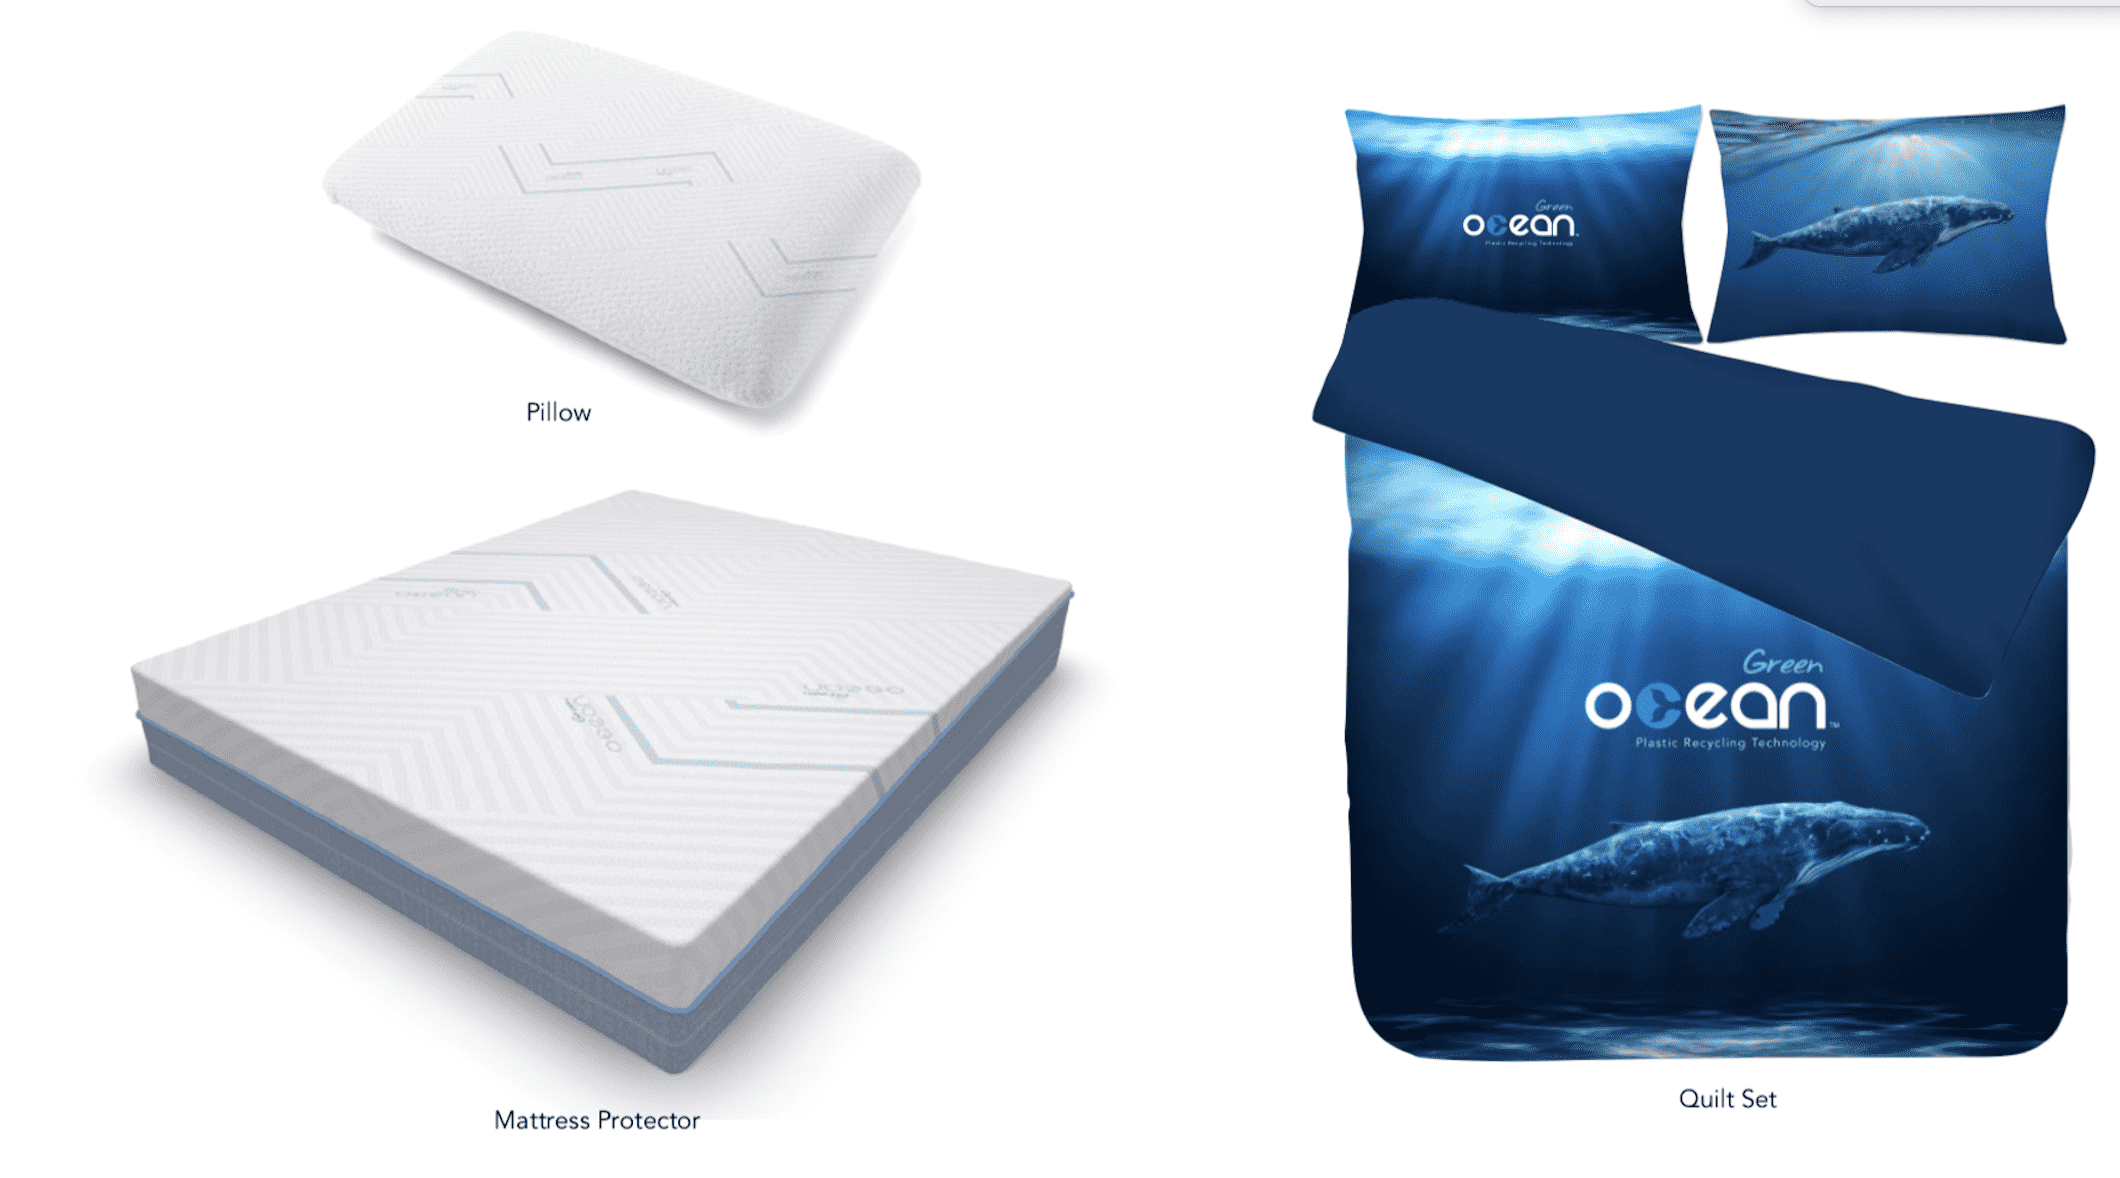 Bedding Manufacturer JHT's new brand Green Ocean for Recycled Products